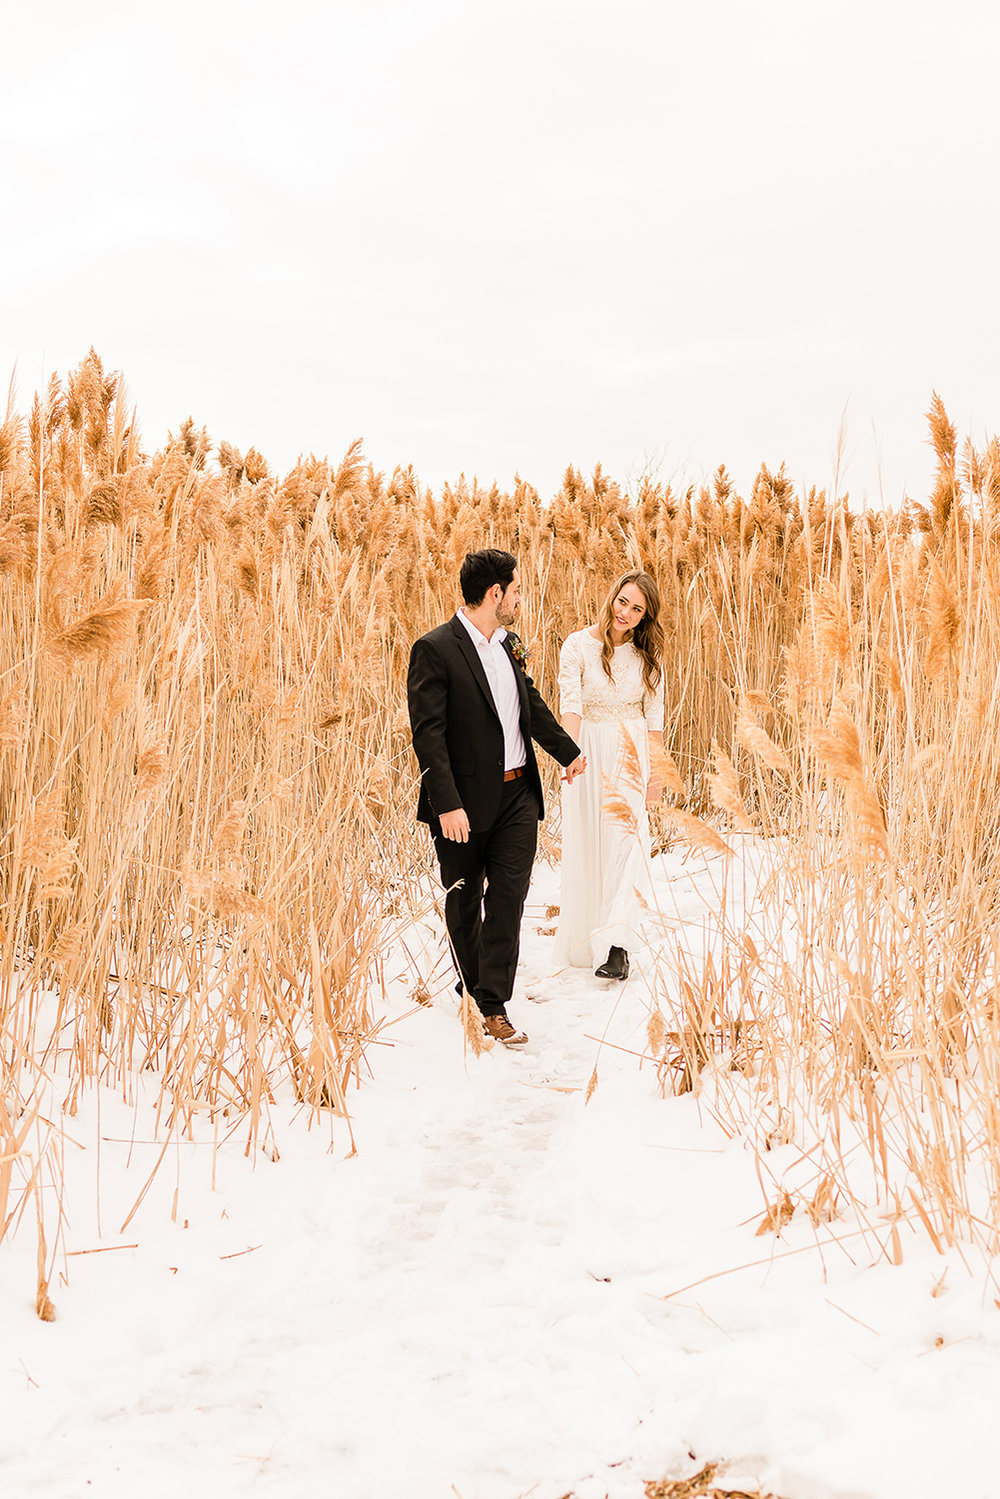 colorado-winter-elopment-colorado-springs-wedding-photographer-13.jpg